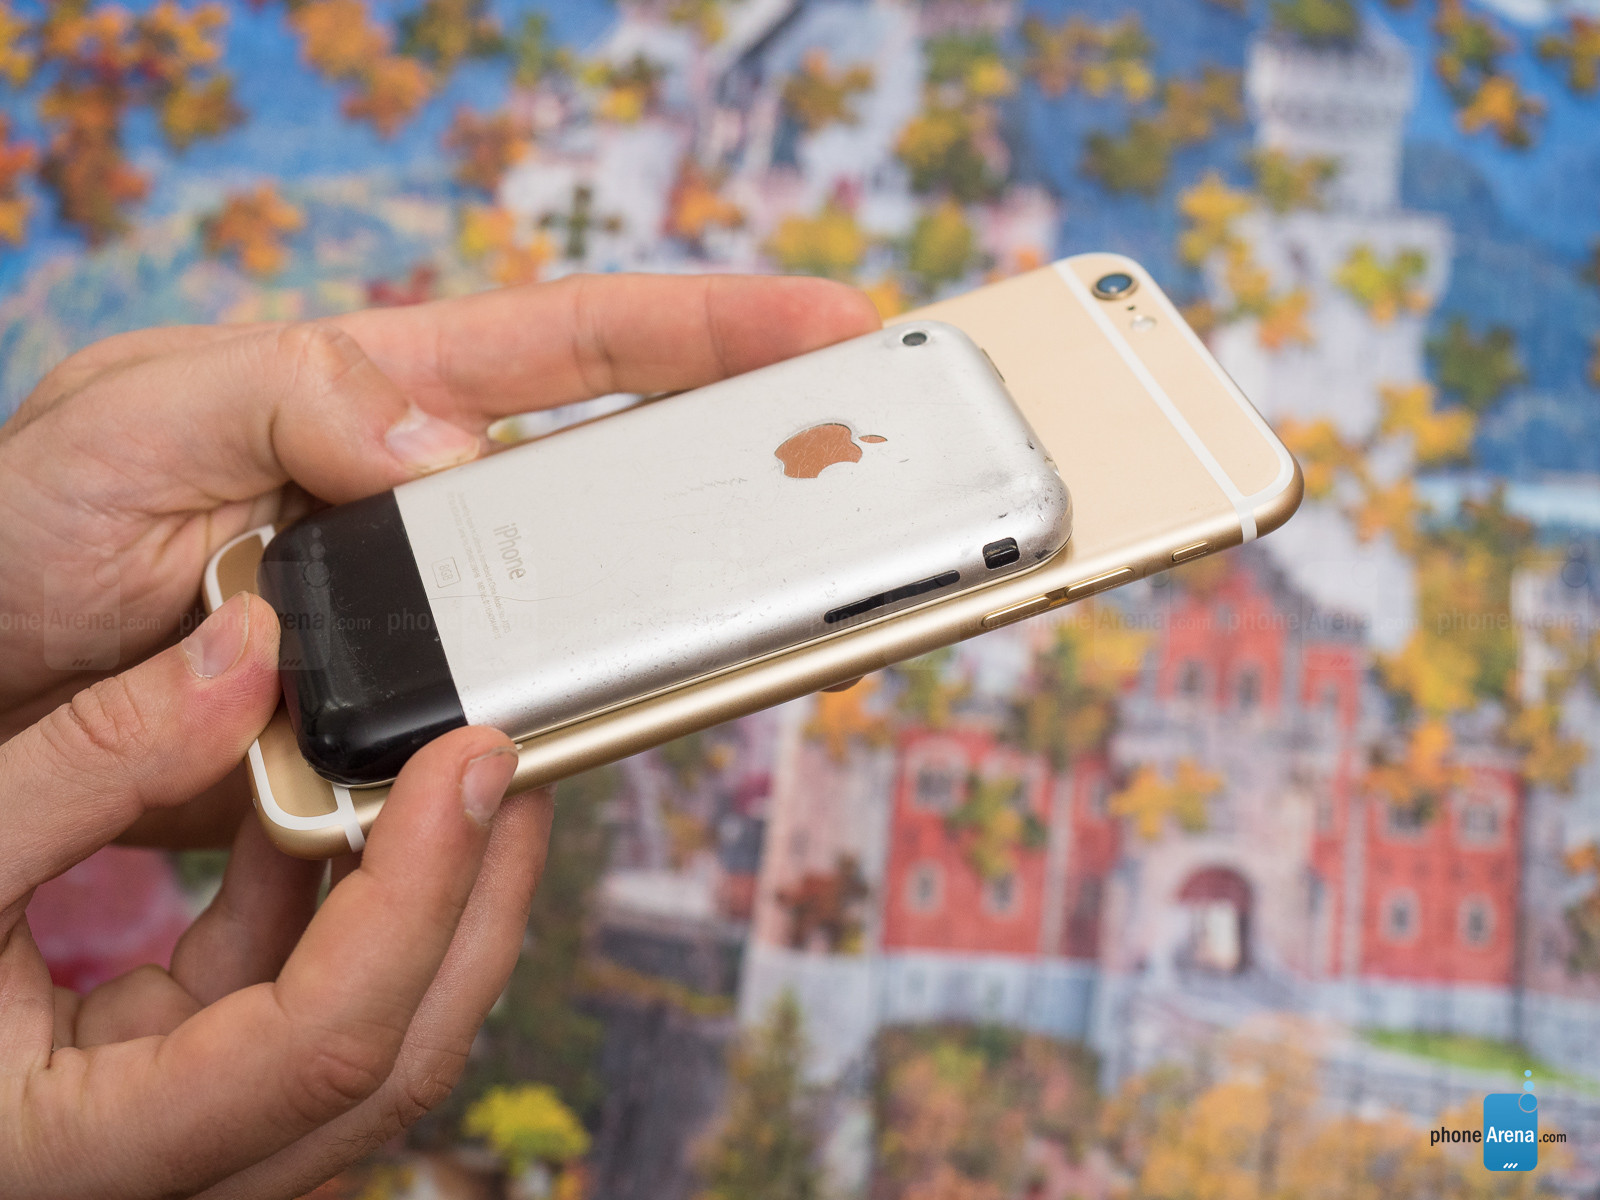 1498804063_bruised-and-battered-but-not-broken-10-years-on-my-iphone-2g-still-works-4.jpg